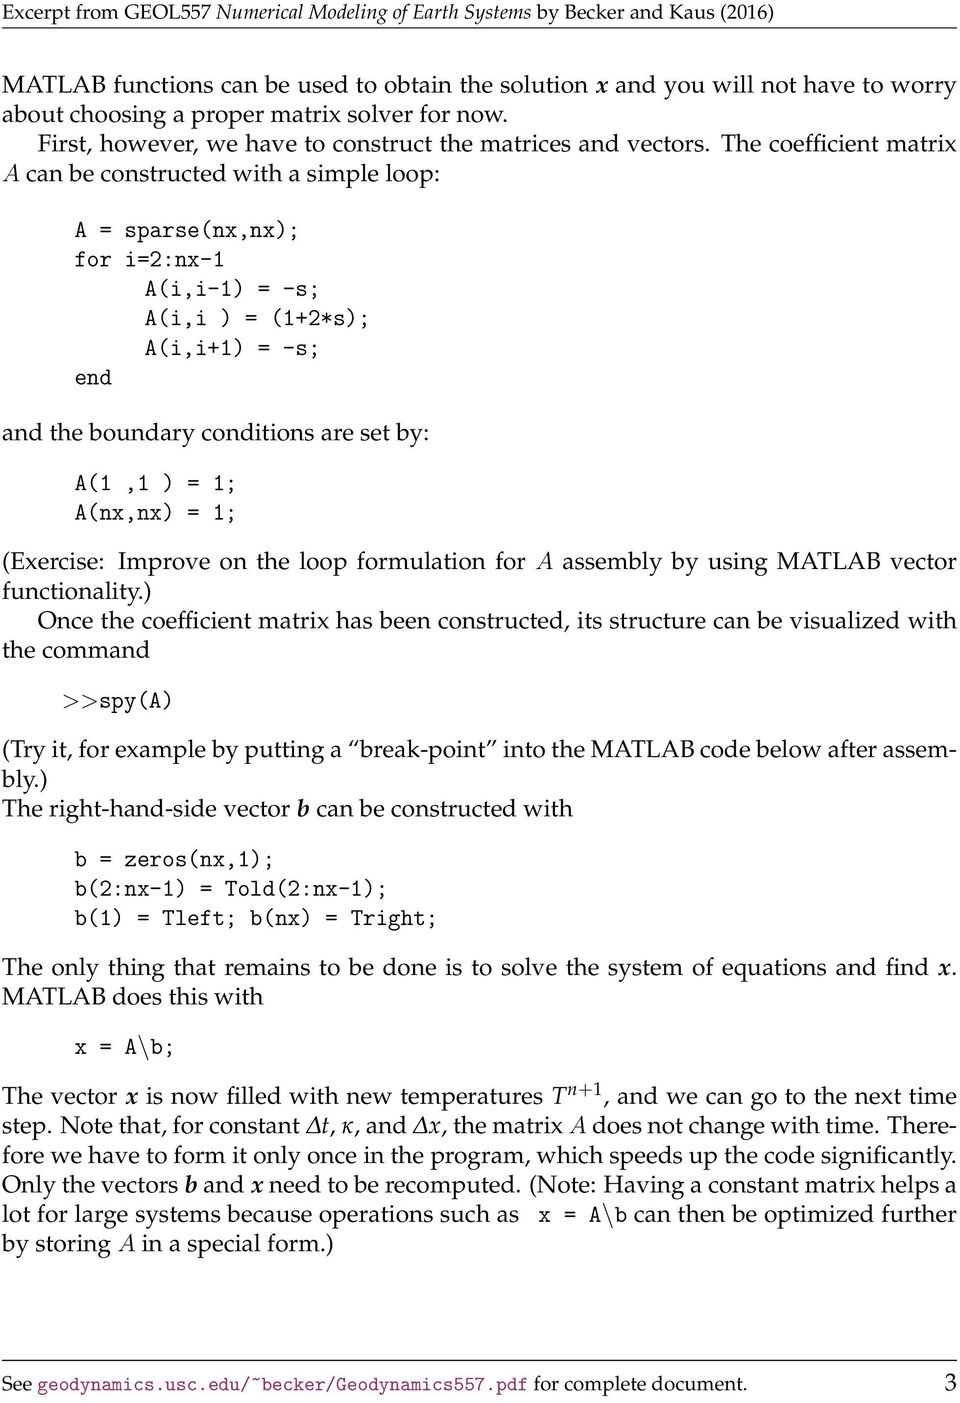 1 Finite difference example: 1D implicit heat equation - PDF